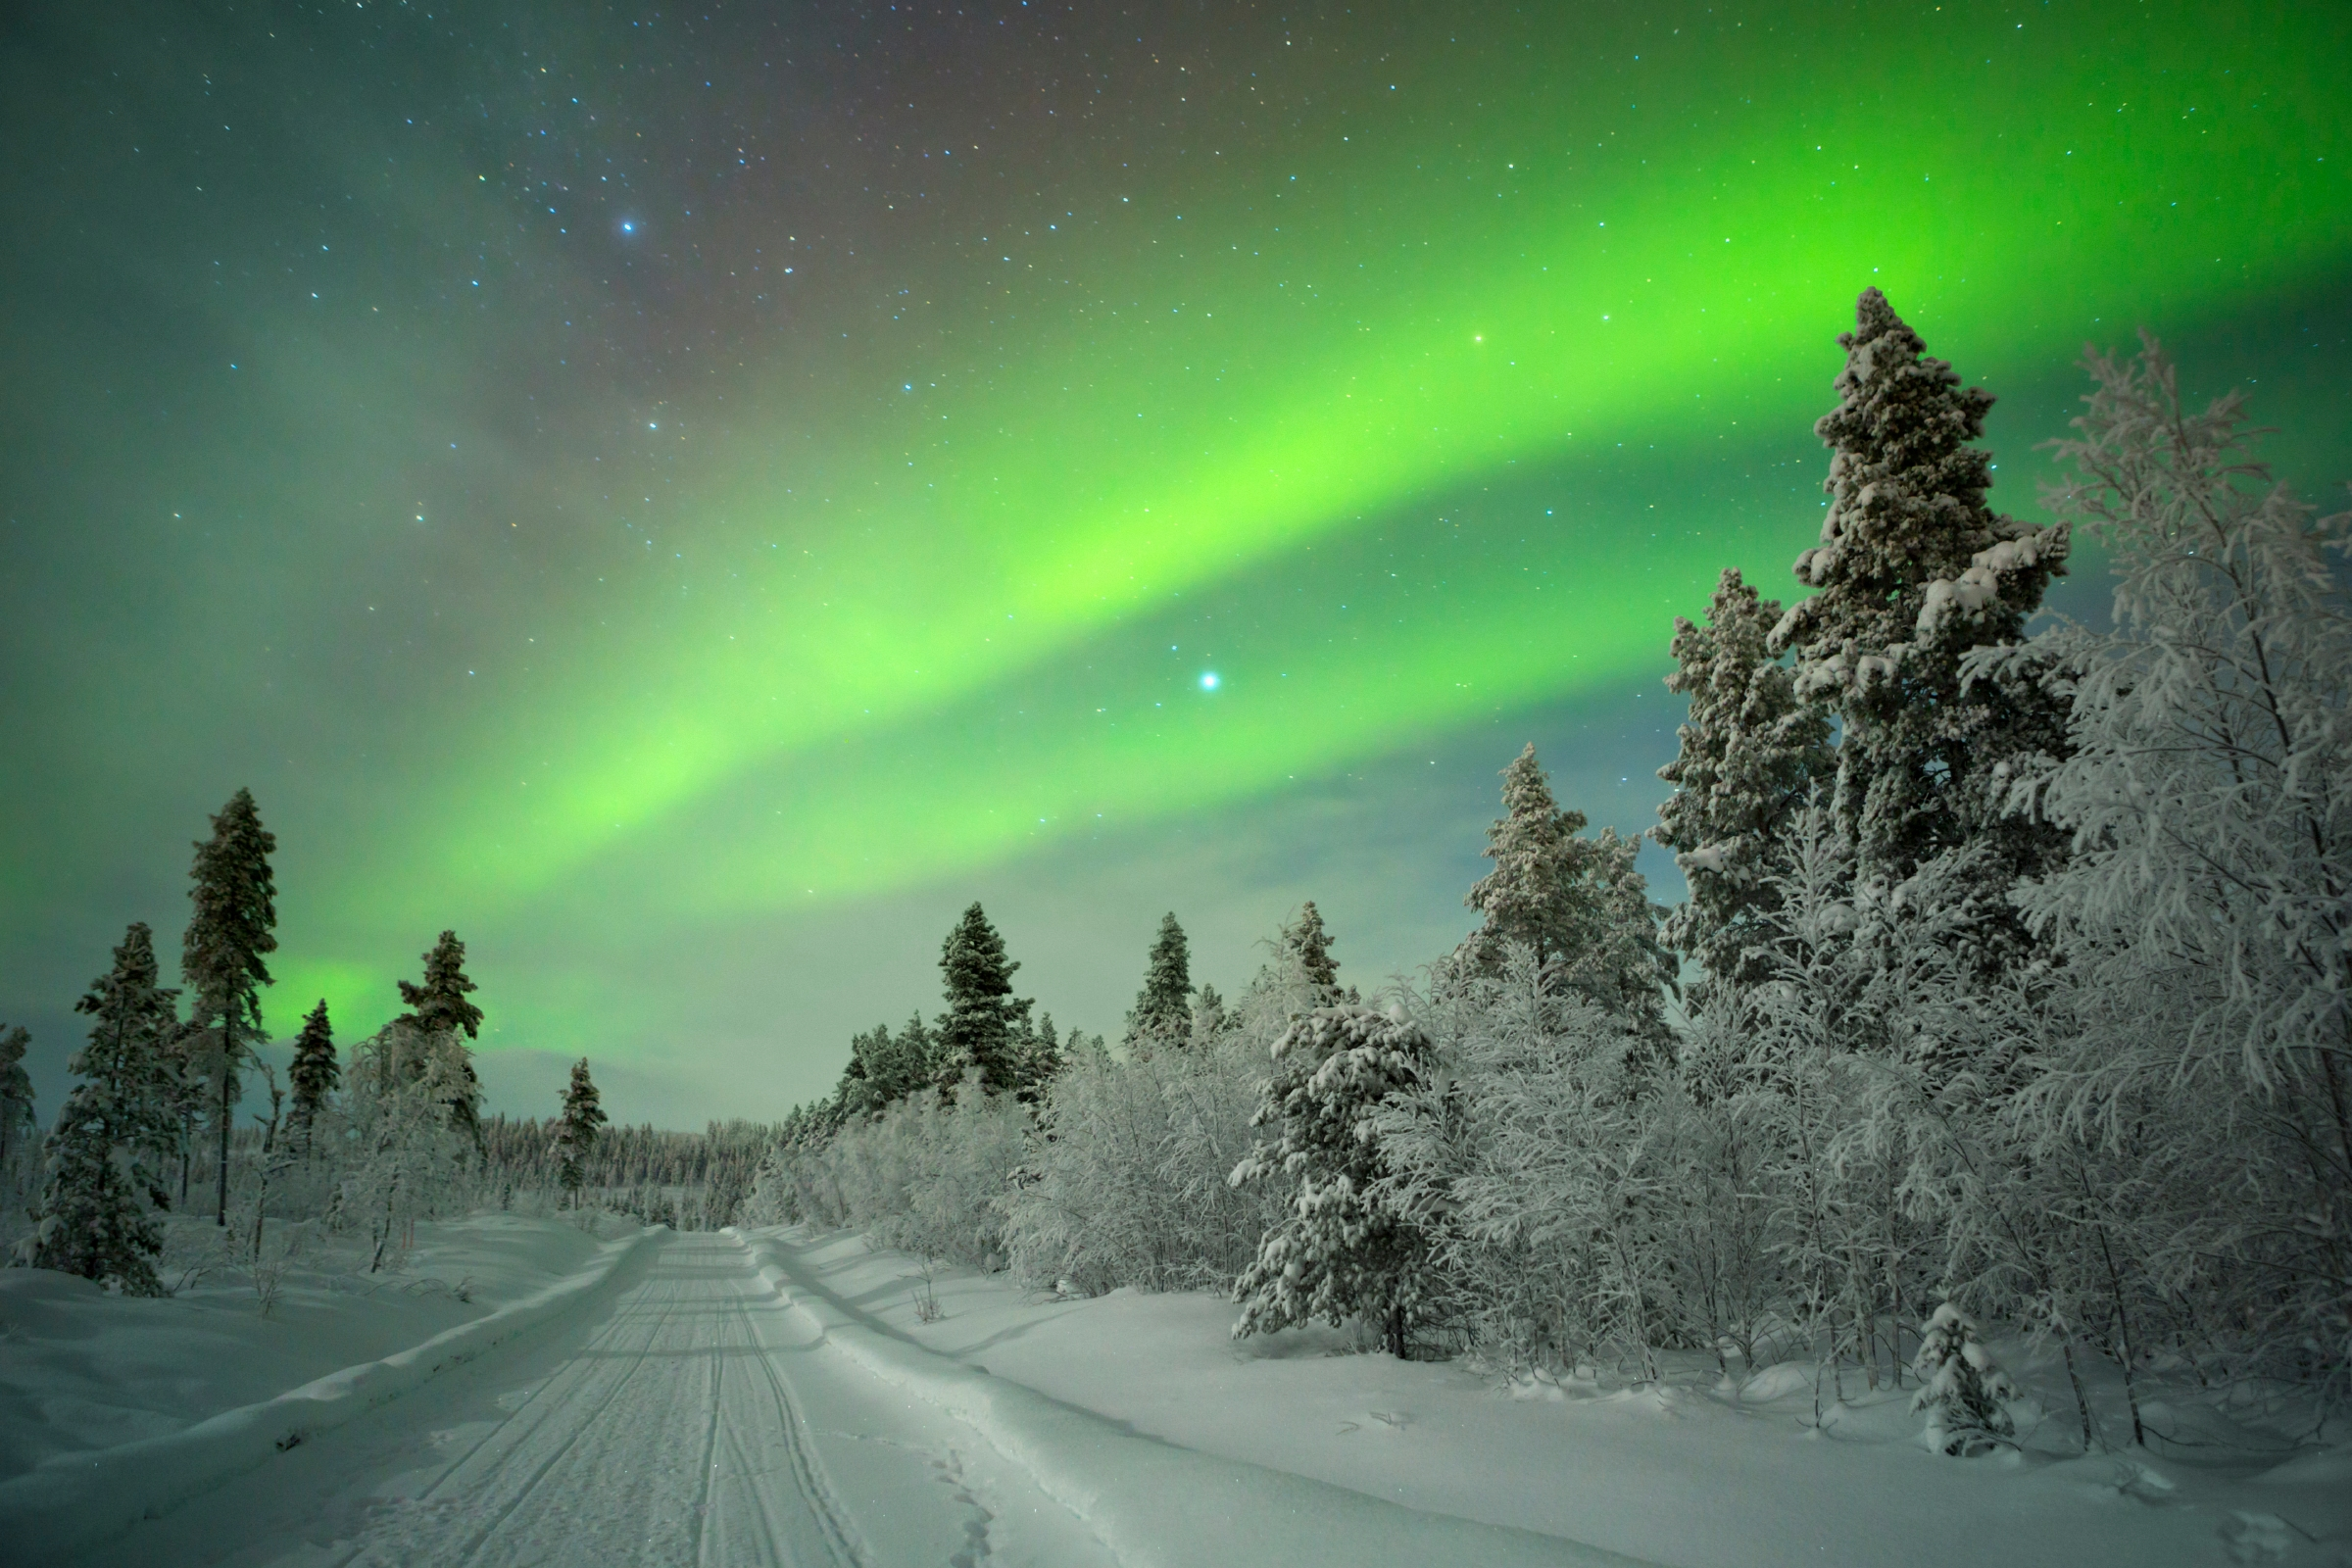 Aurora borealis over a track through winter landscape in a Finnish Lapland. Image: Sara Winter/Getty Images